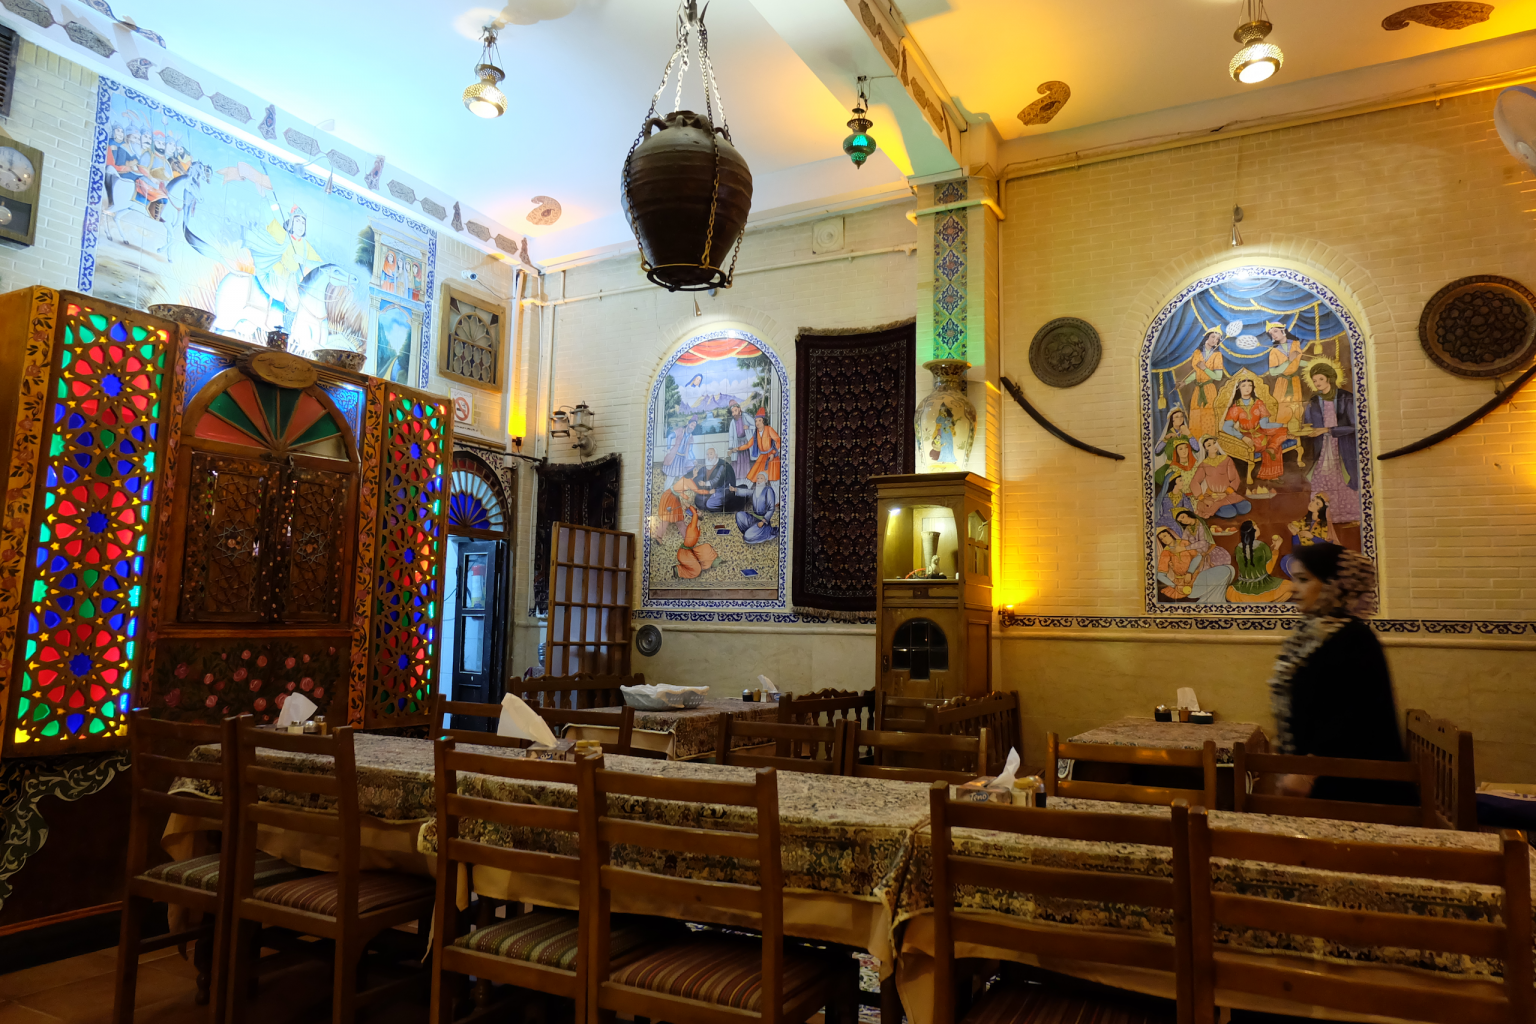 Seray-e Mehr Teahouse & Restaurant